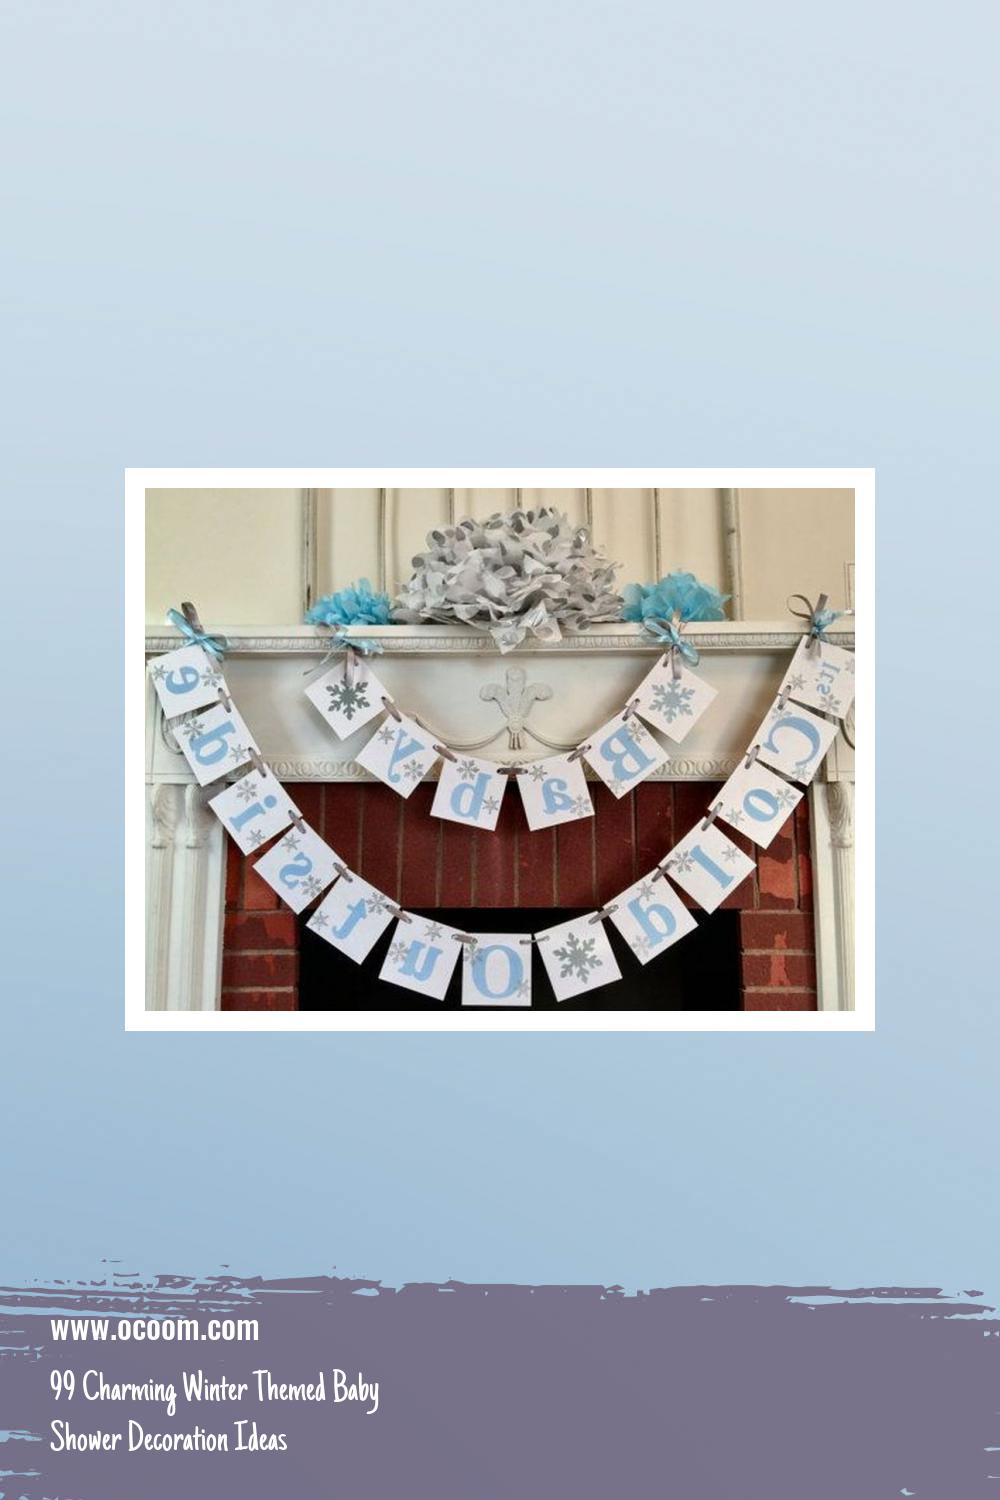 99 Charming Winter Themed Baby Shower Decoration Ideas 34